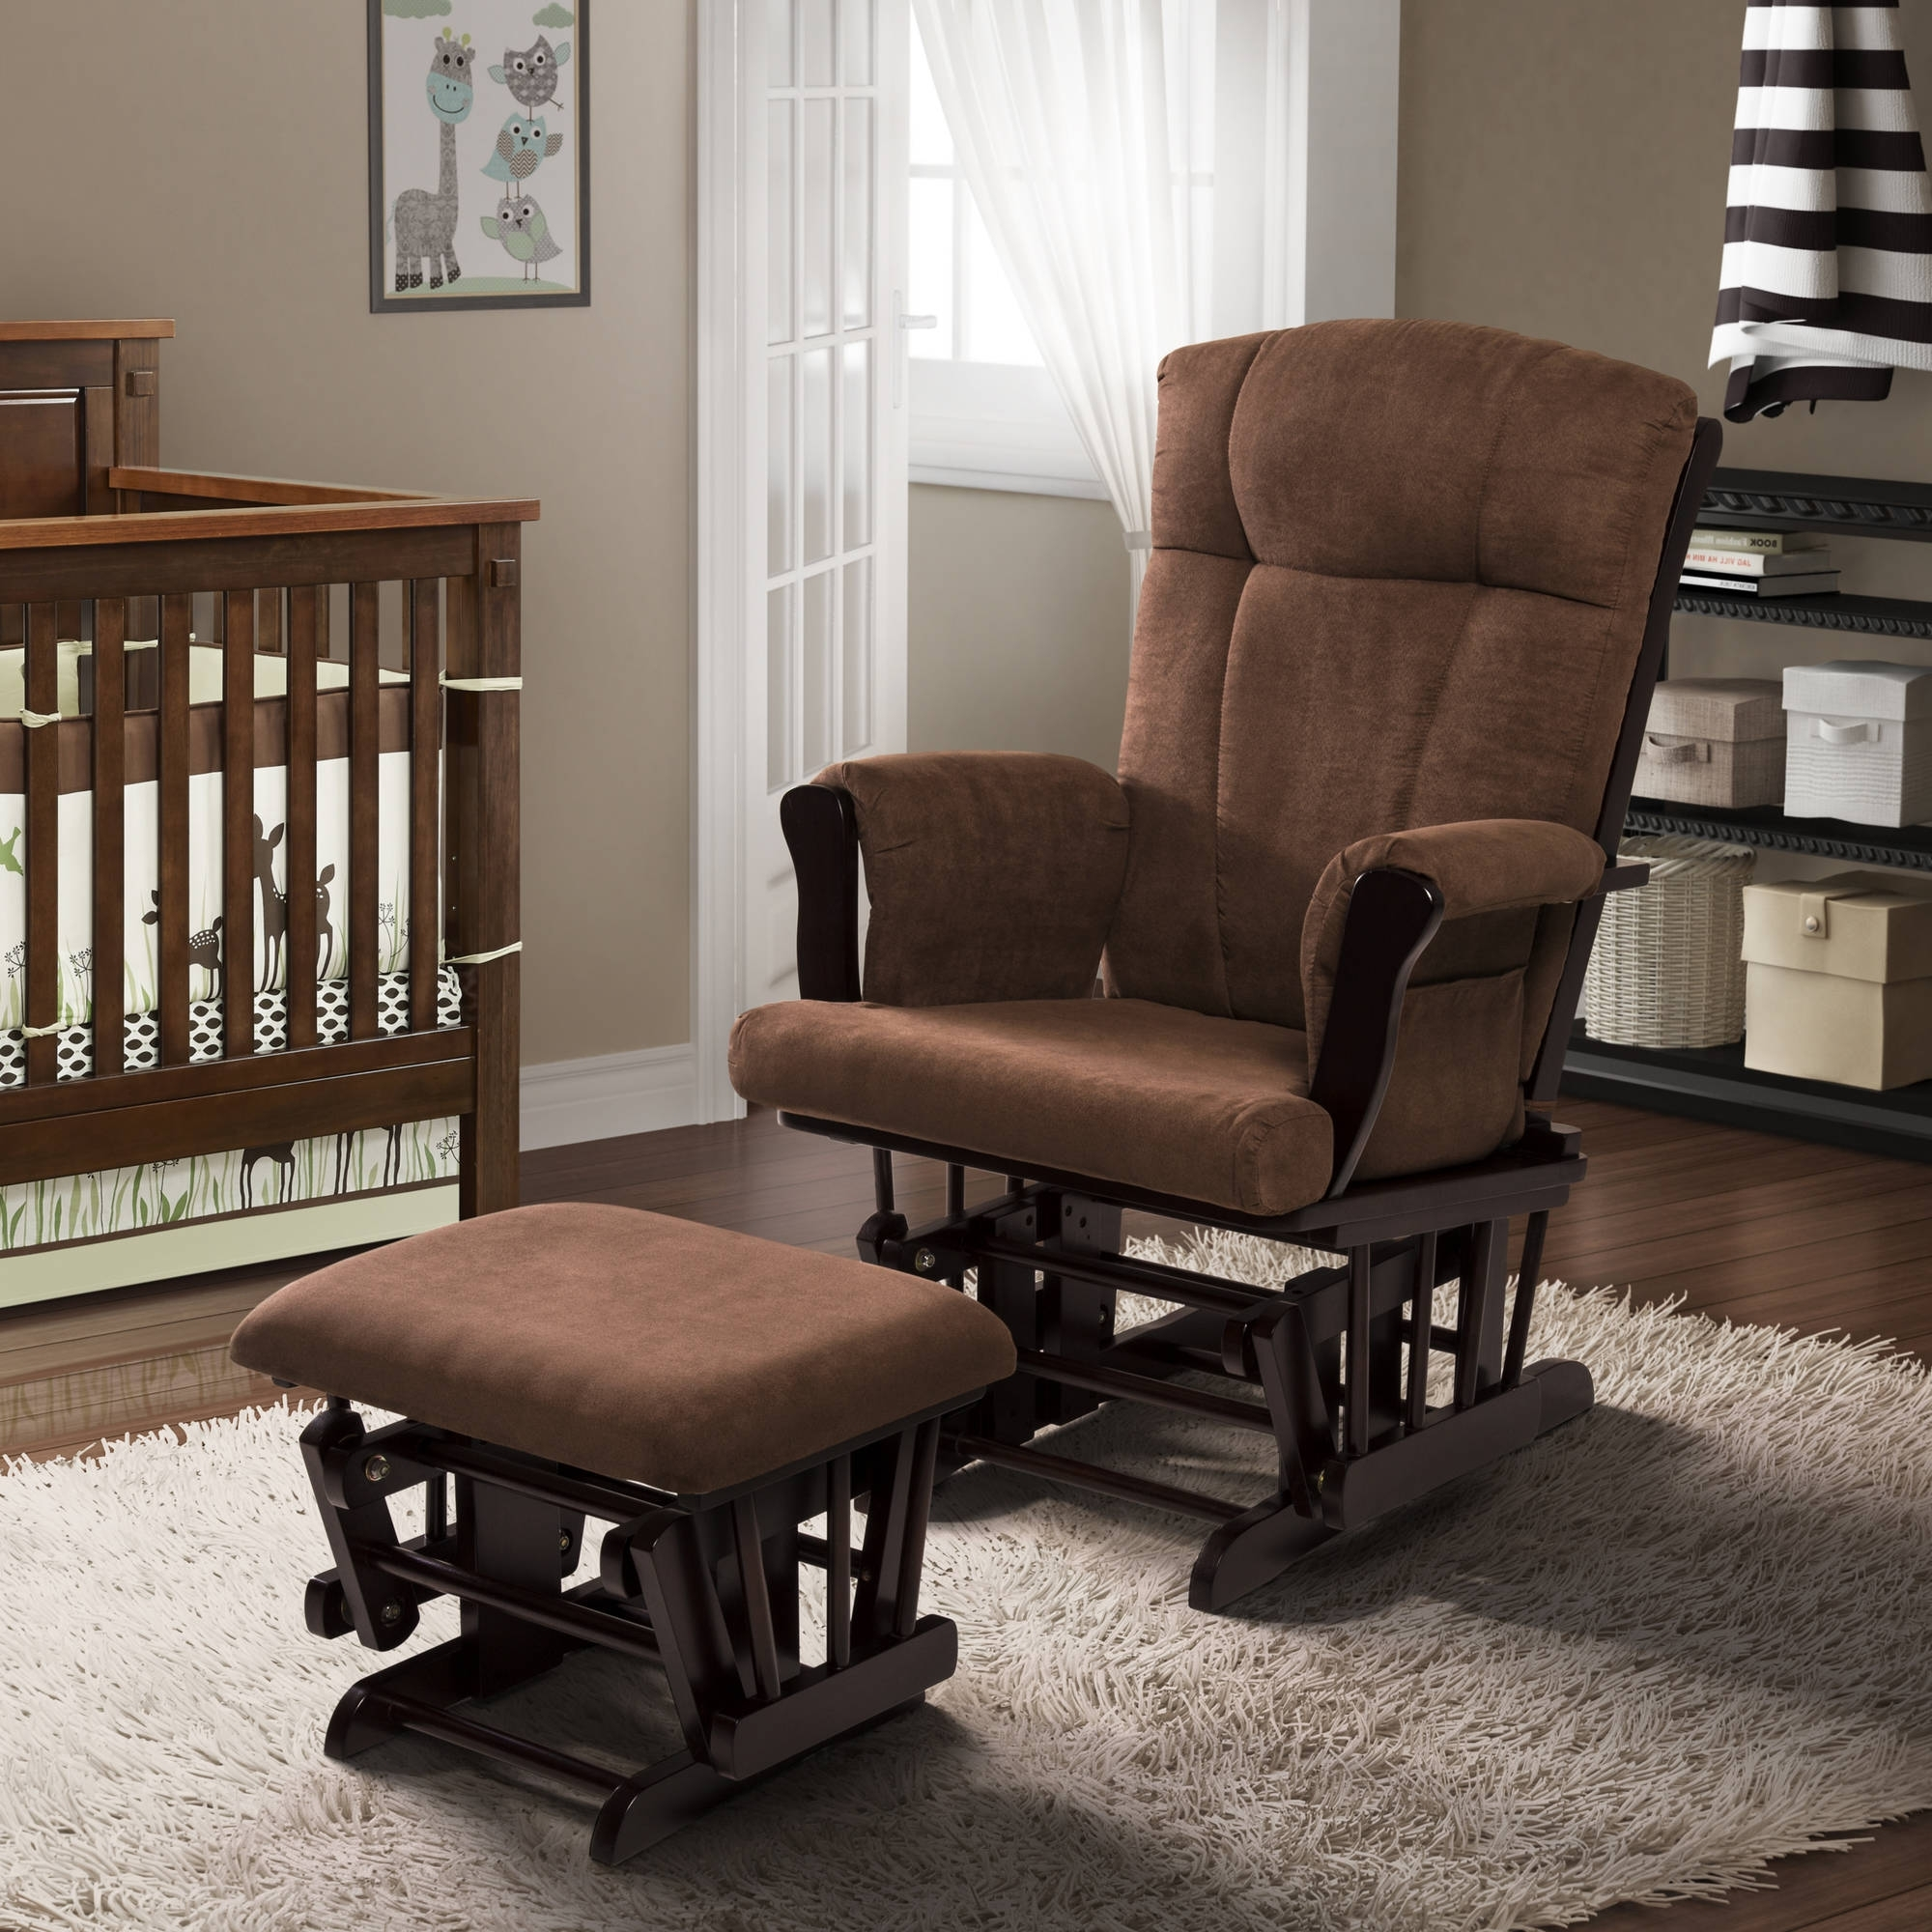 Baby Relax Hadley Double Rocker Dark Taupe – Walmart Within Preferred Walmart Rocking Chairs (View 2 of 20)